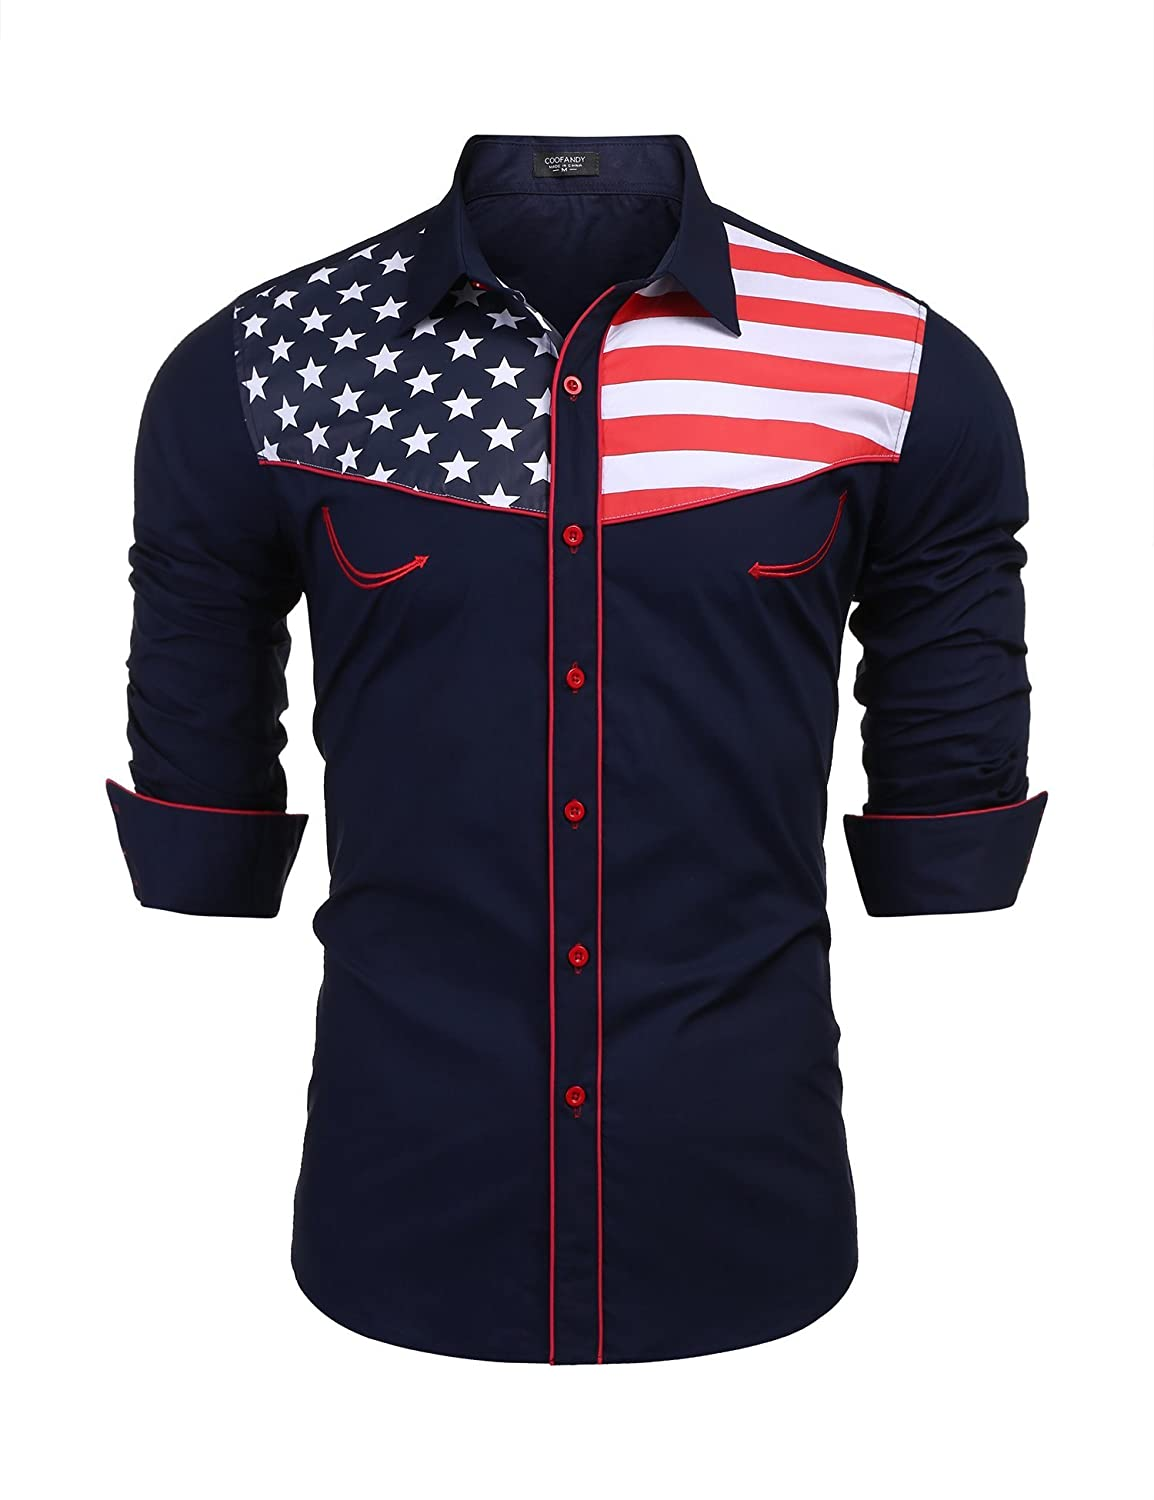 9affaeedd8f Top 10 wholesale Double Breasted Cowboy Shirt - Chinabrands.com